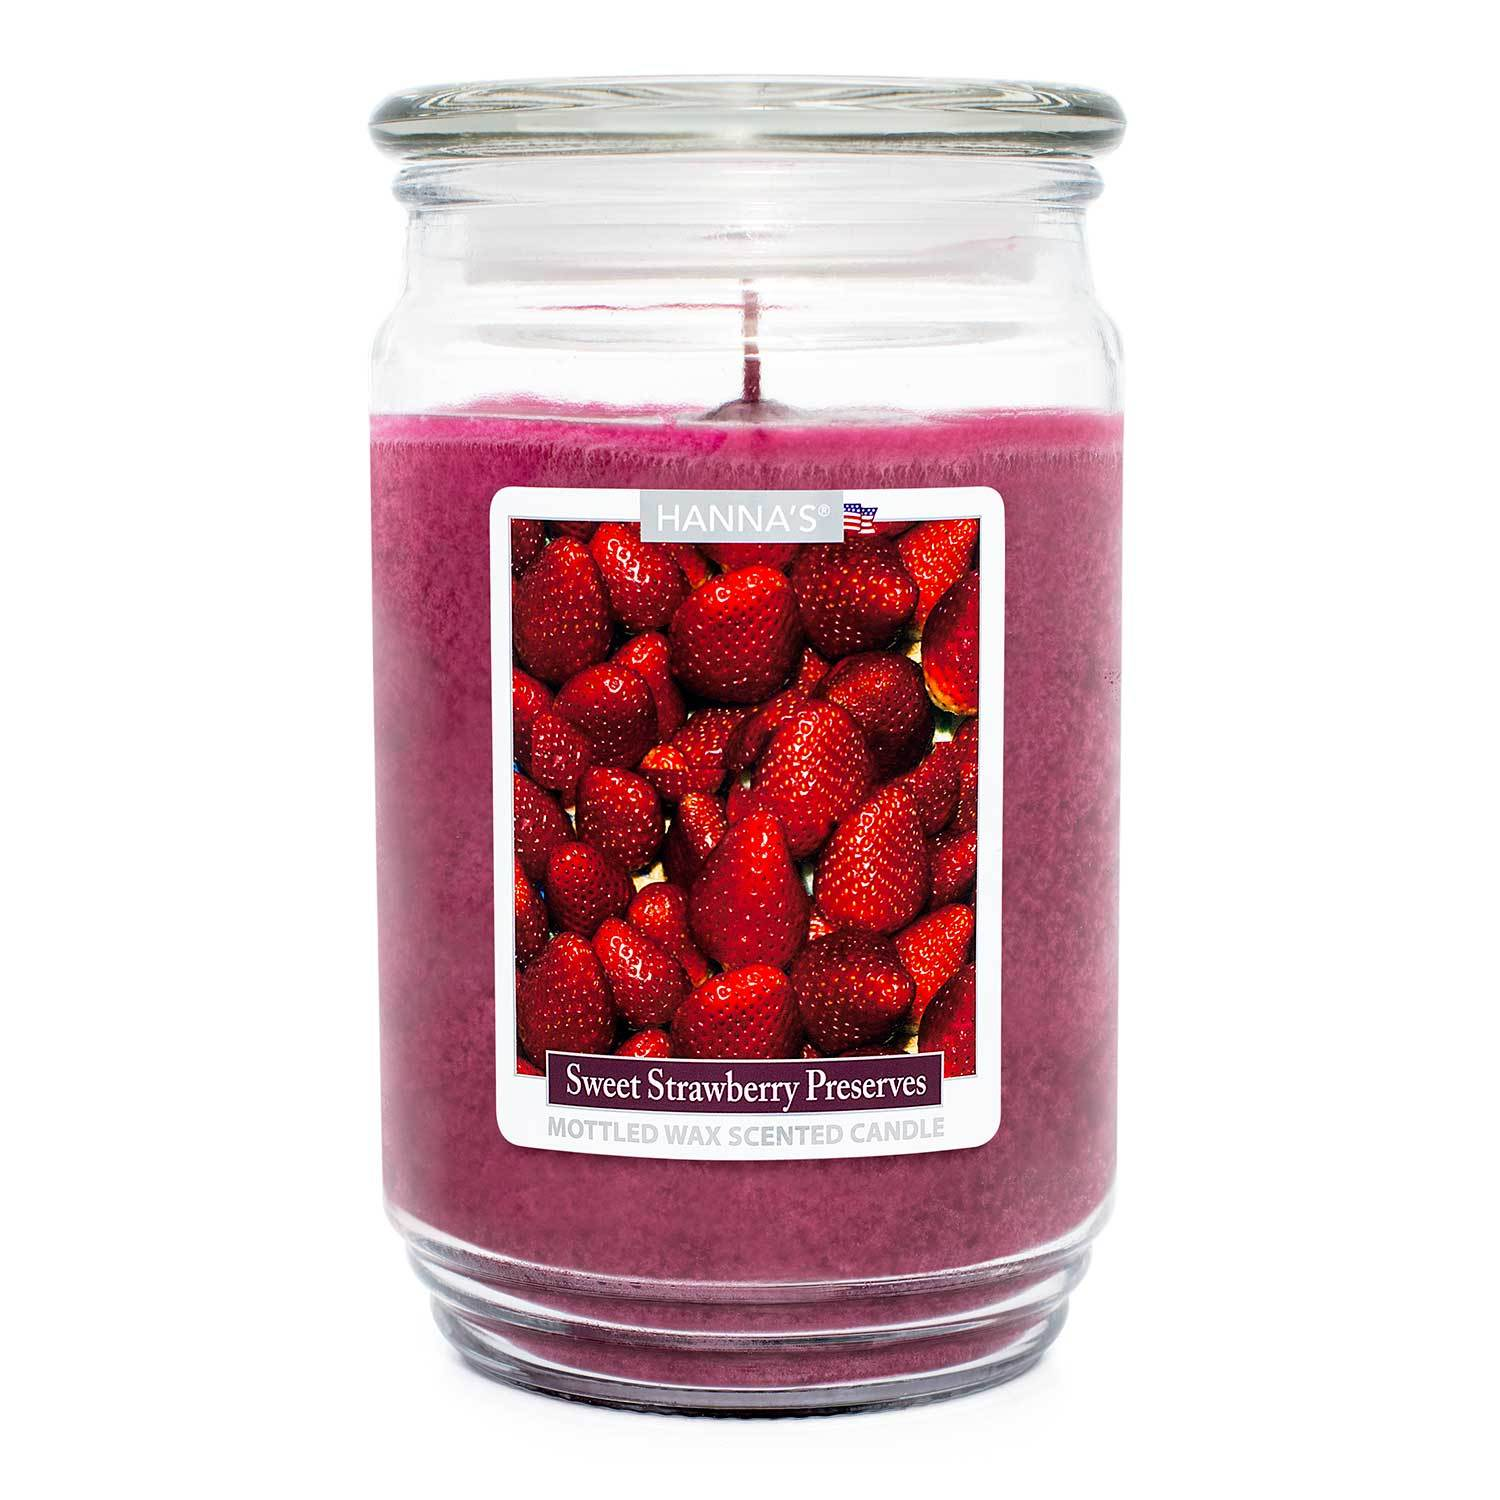 Sweet Strawberry Preserves Scented Mottled Wax Candle Candles Candlemart.com $ 13.99